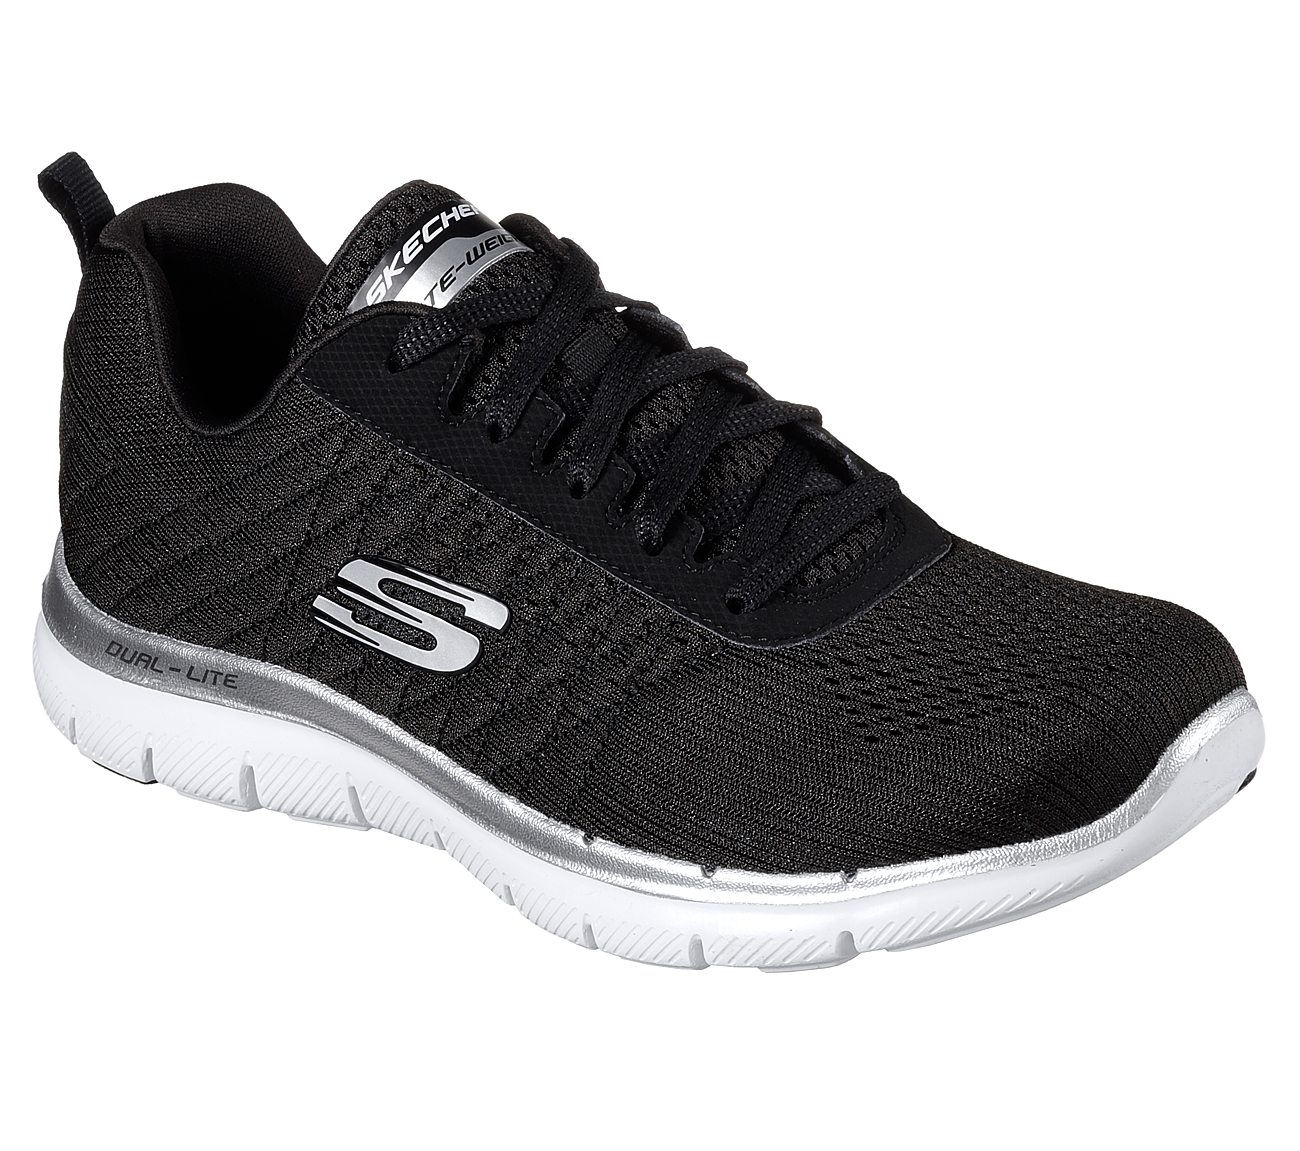 4edab15a7a6 Exclusive SKECHERS Mulheres shoes - SKECHERS Brasil